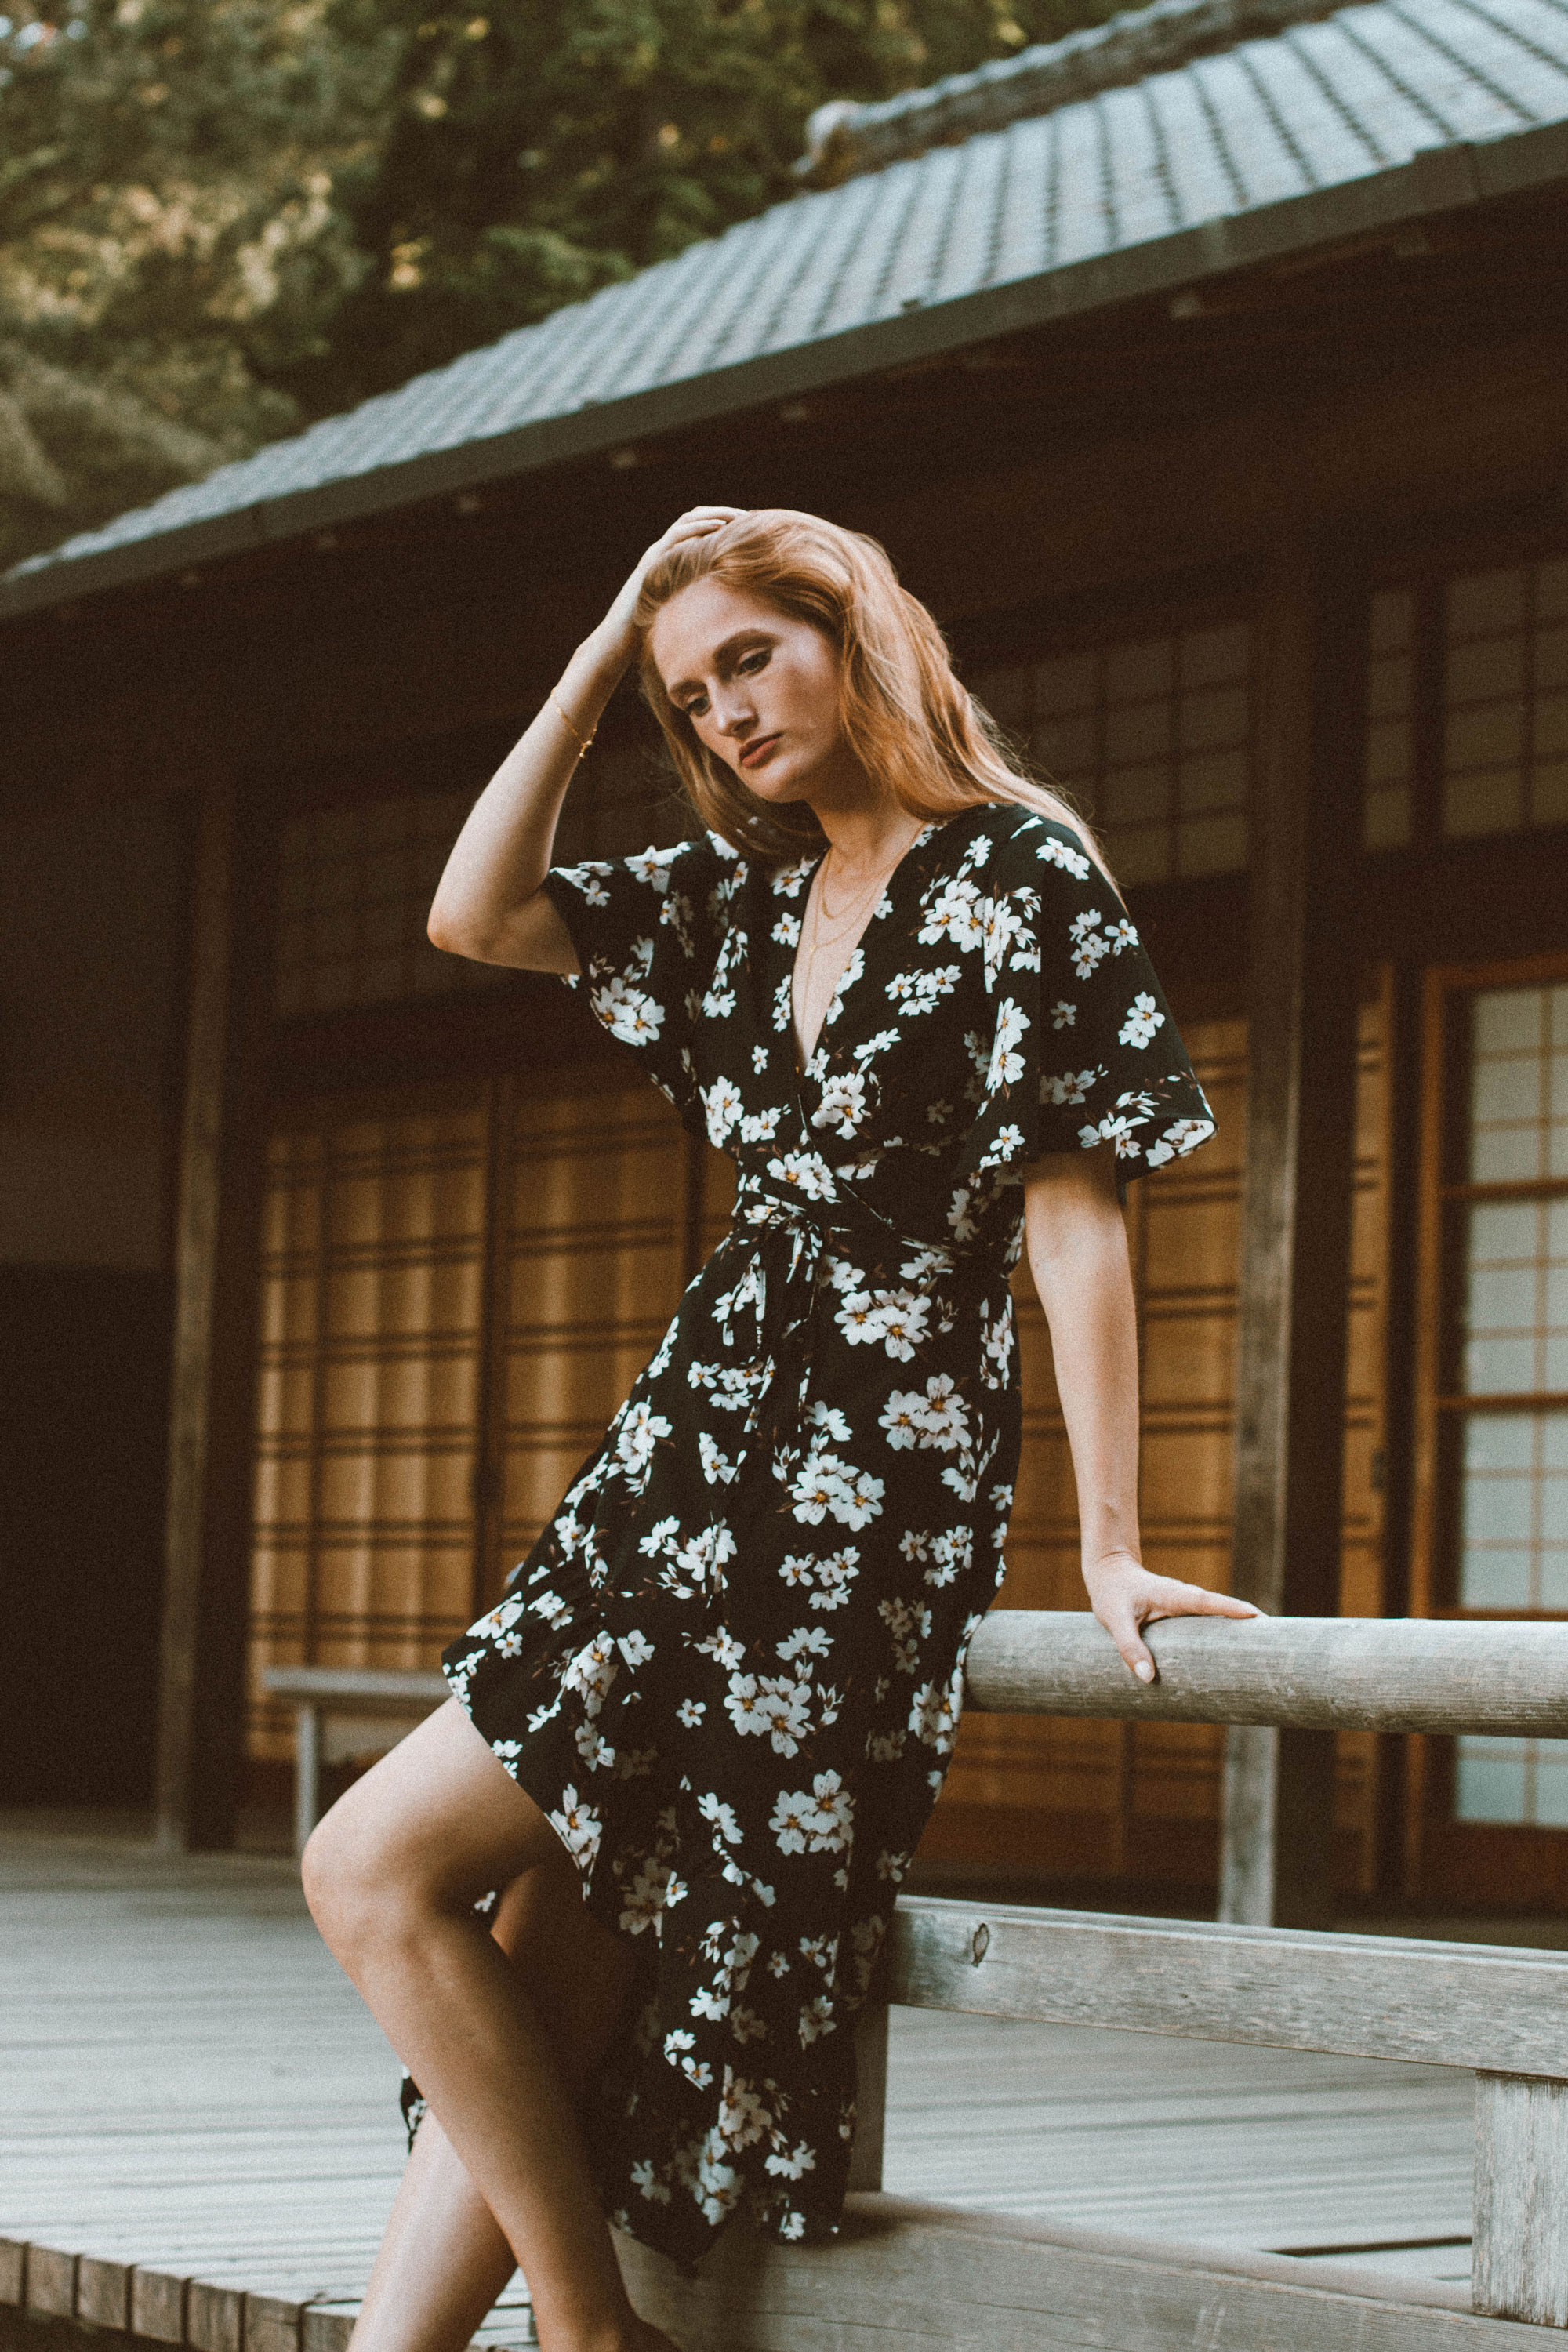 Floral Wrap Dress at the Portland Japanese Garden • Stop, Drop & Vogue